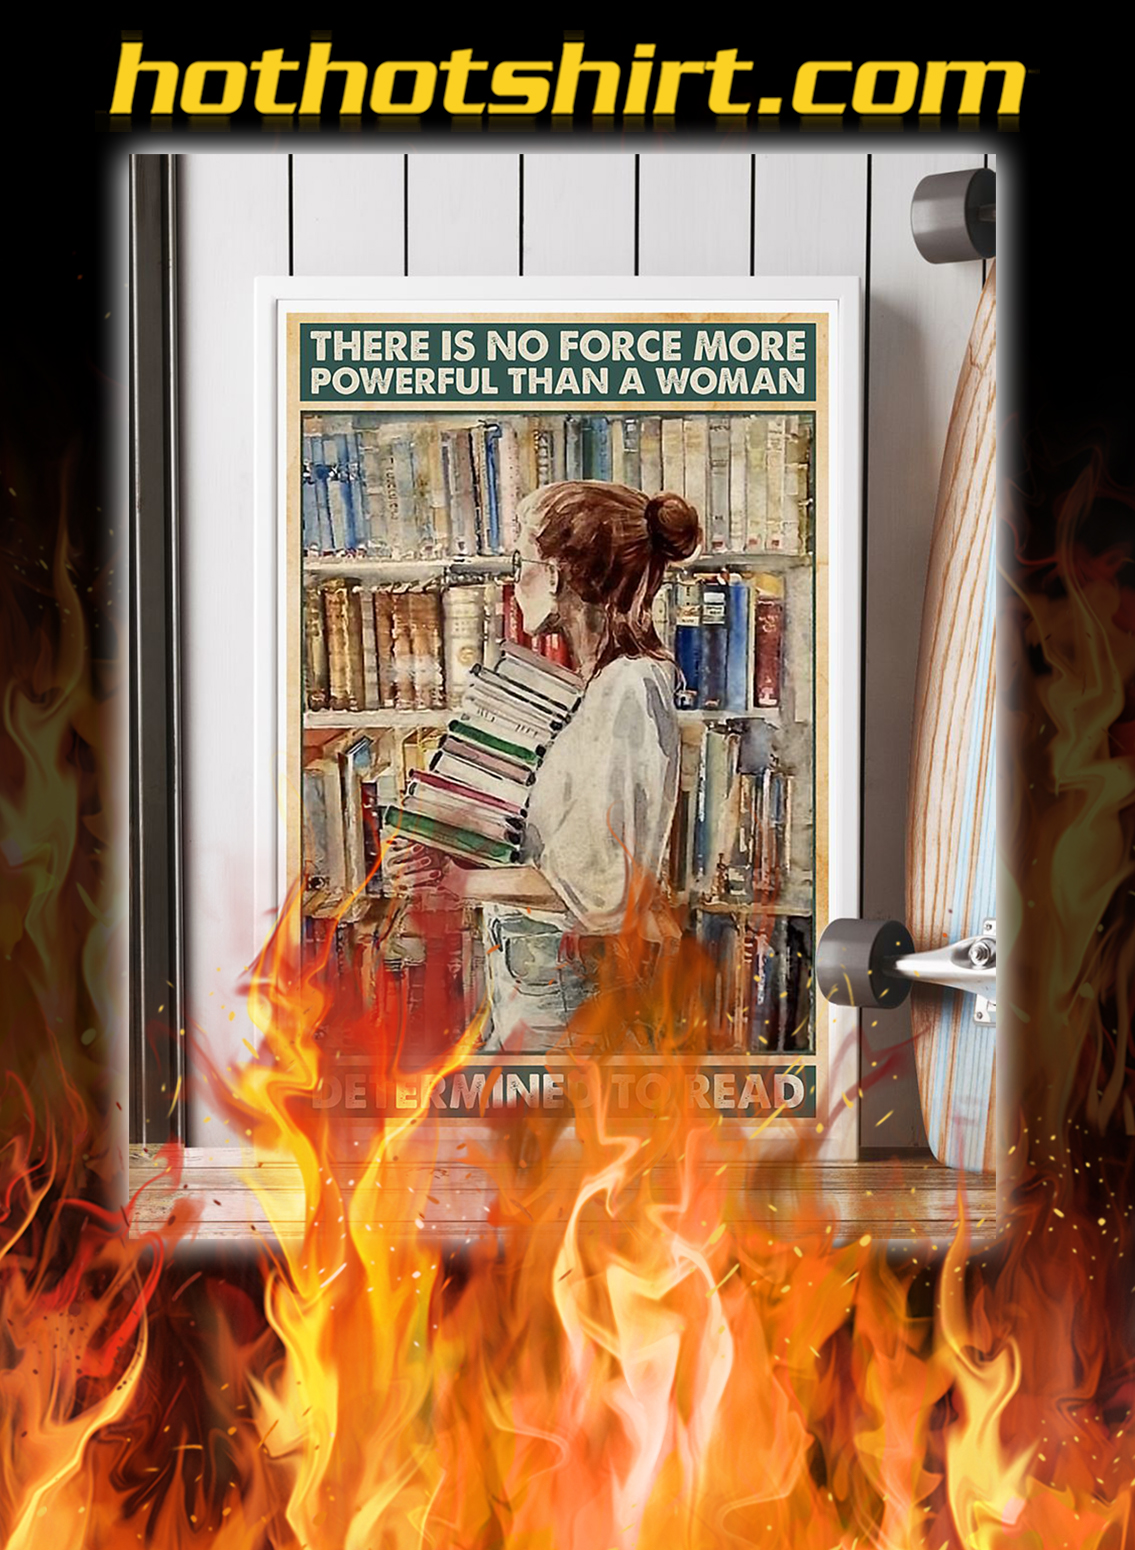 There is no force more powerful than a woman determined to read poster- A4